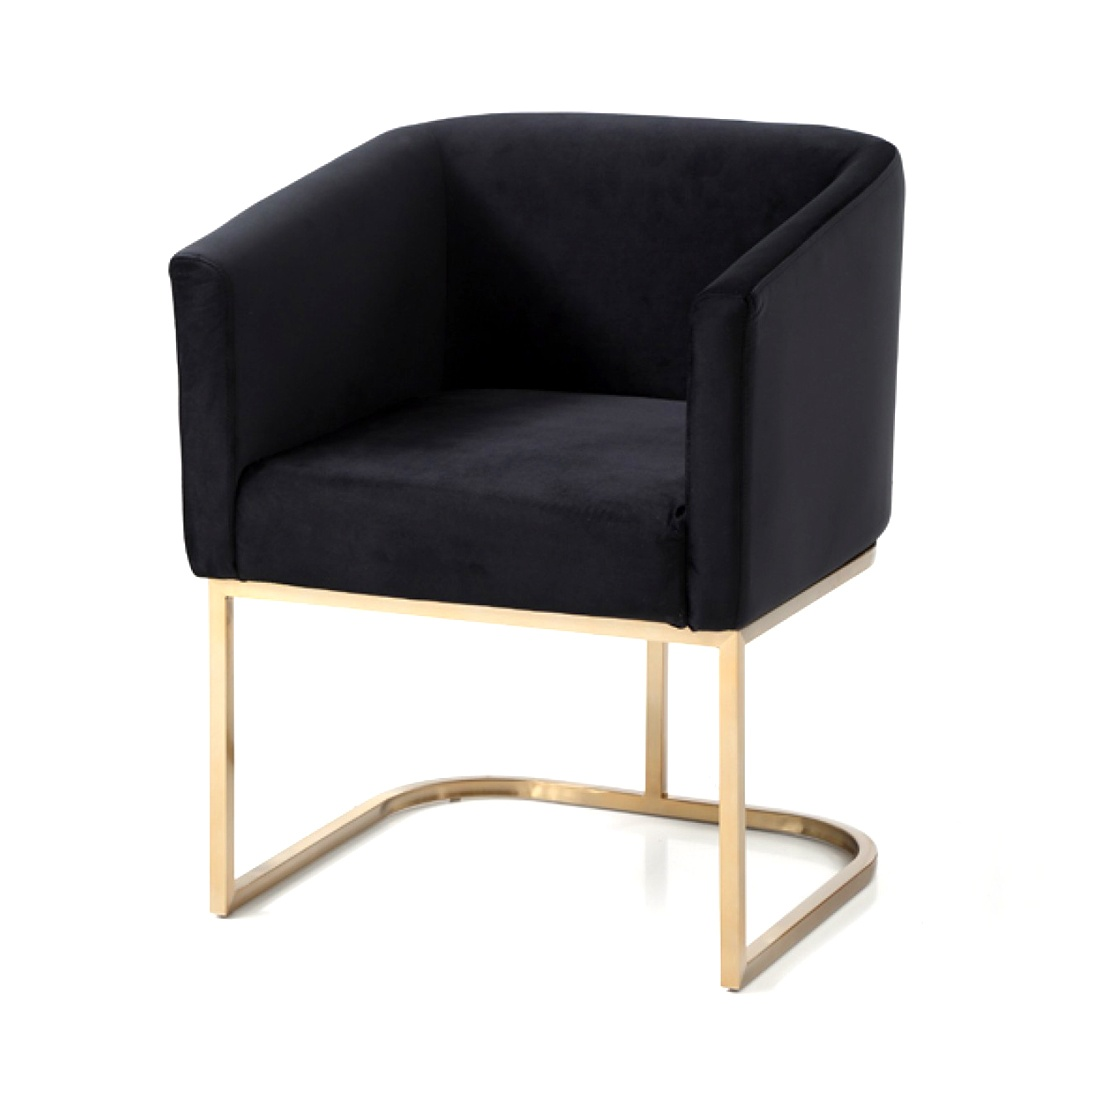 Uno Dining Chair Black Event Trade Show Furniture Rental Formdecor